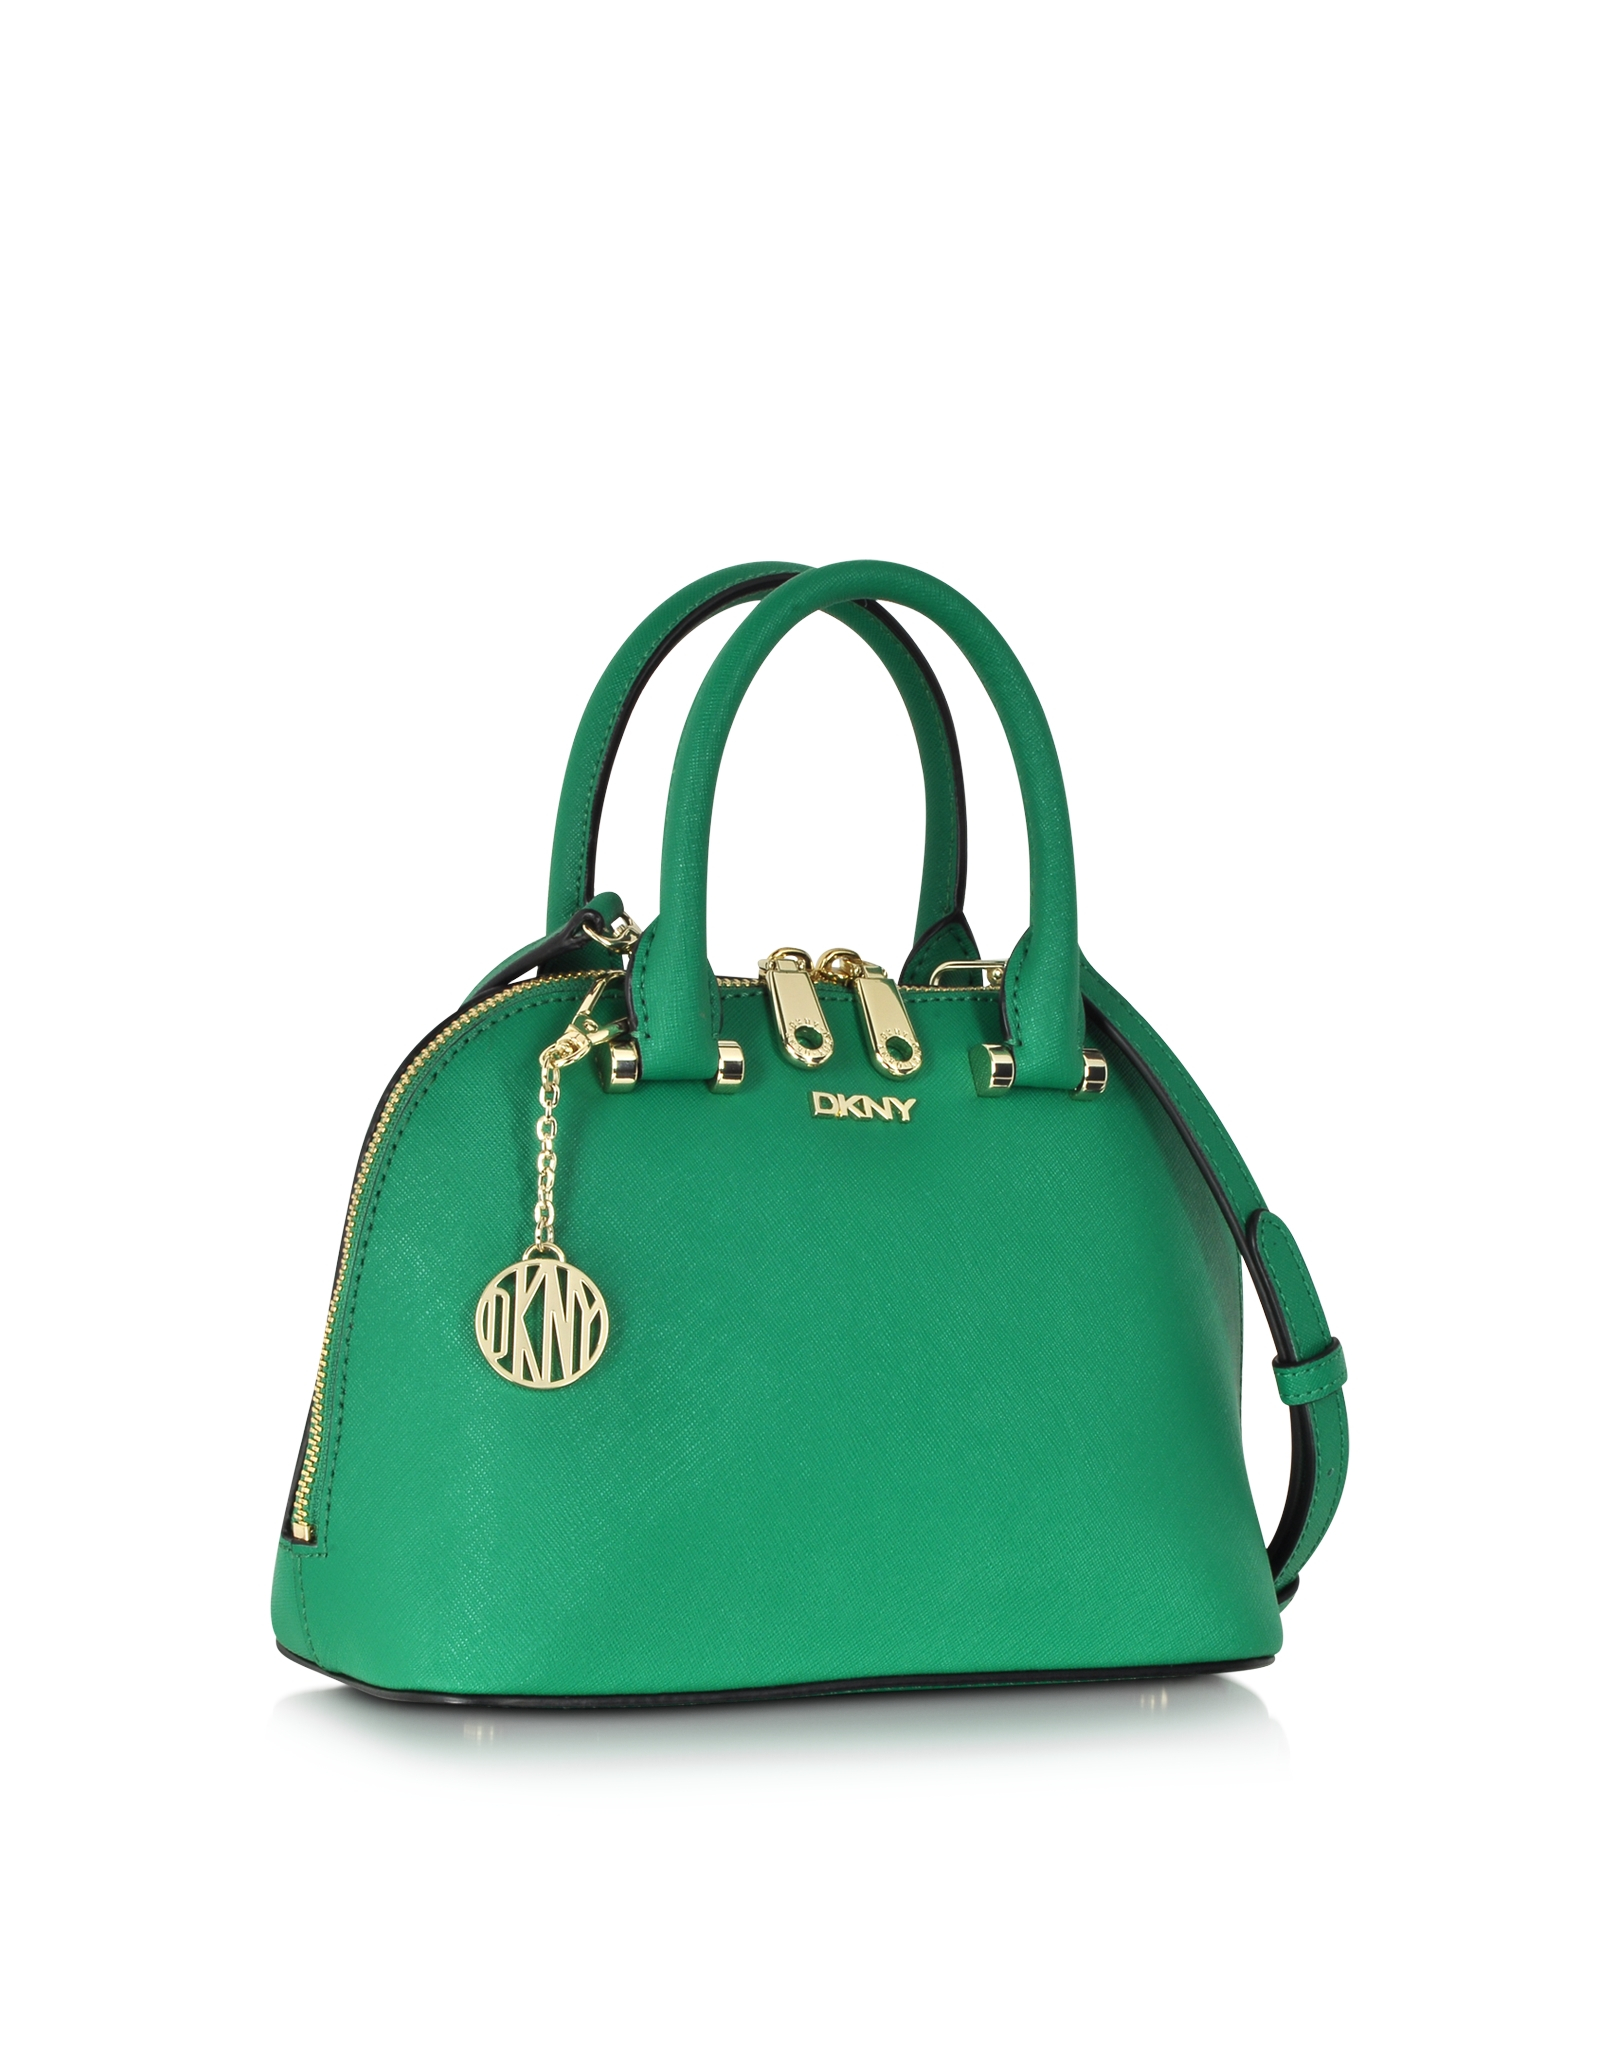 Lyst - Dkny Bryant Park Grass Green Saffiano Leather Mini ... Michael Kors Pink Crossbody Bags